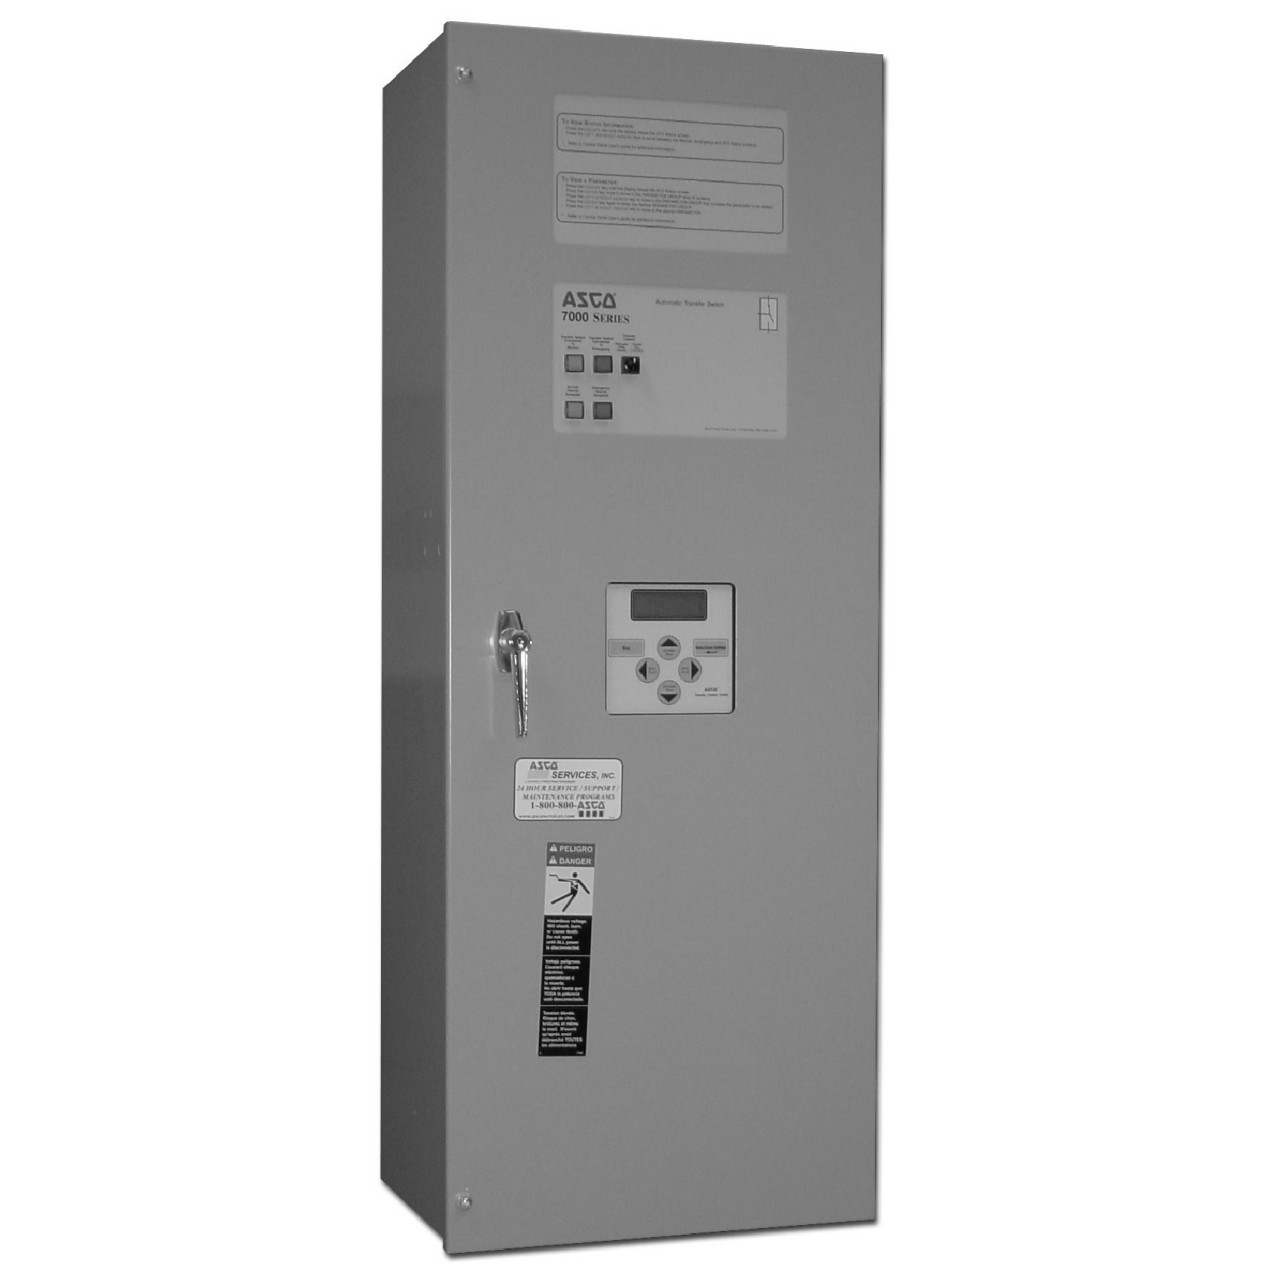 Asco 7000 Auto Transfer Switch (3Ph, 150A)